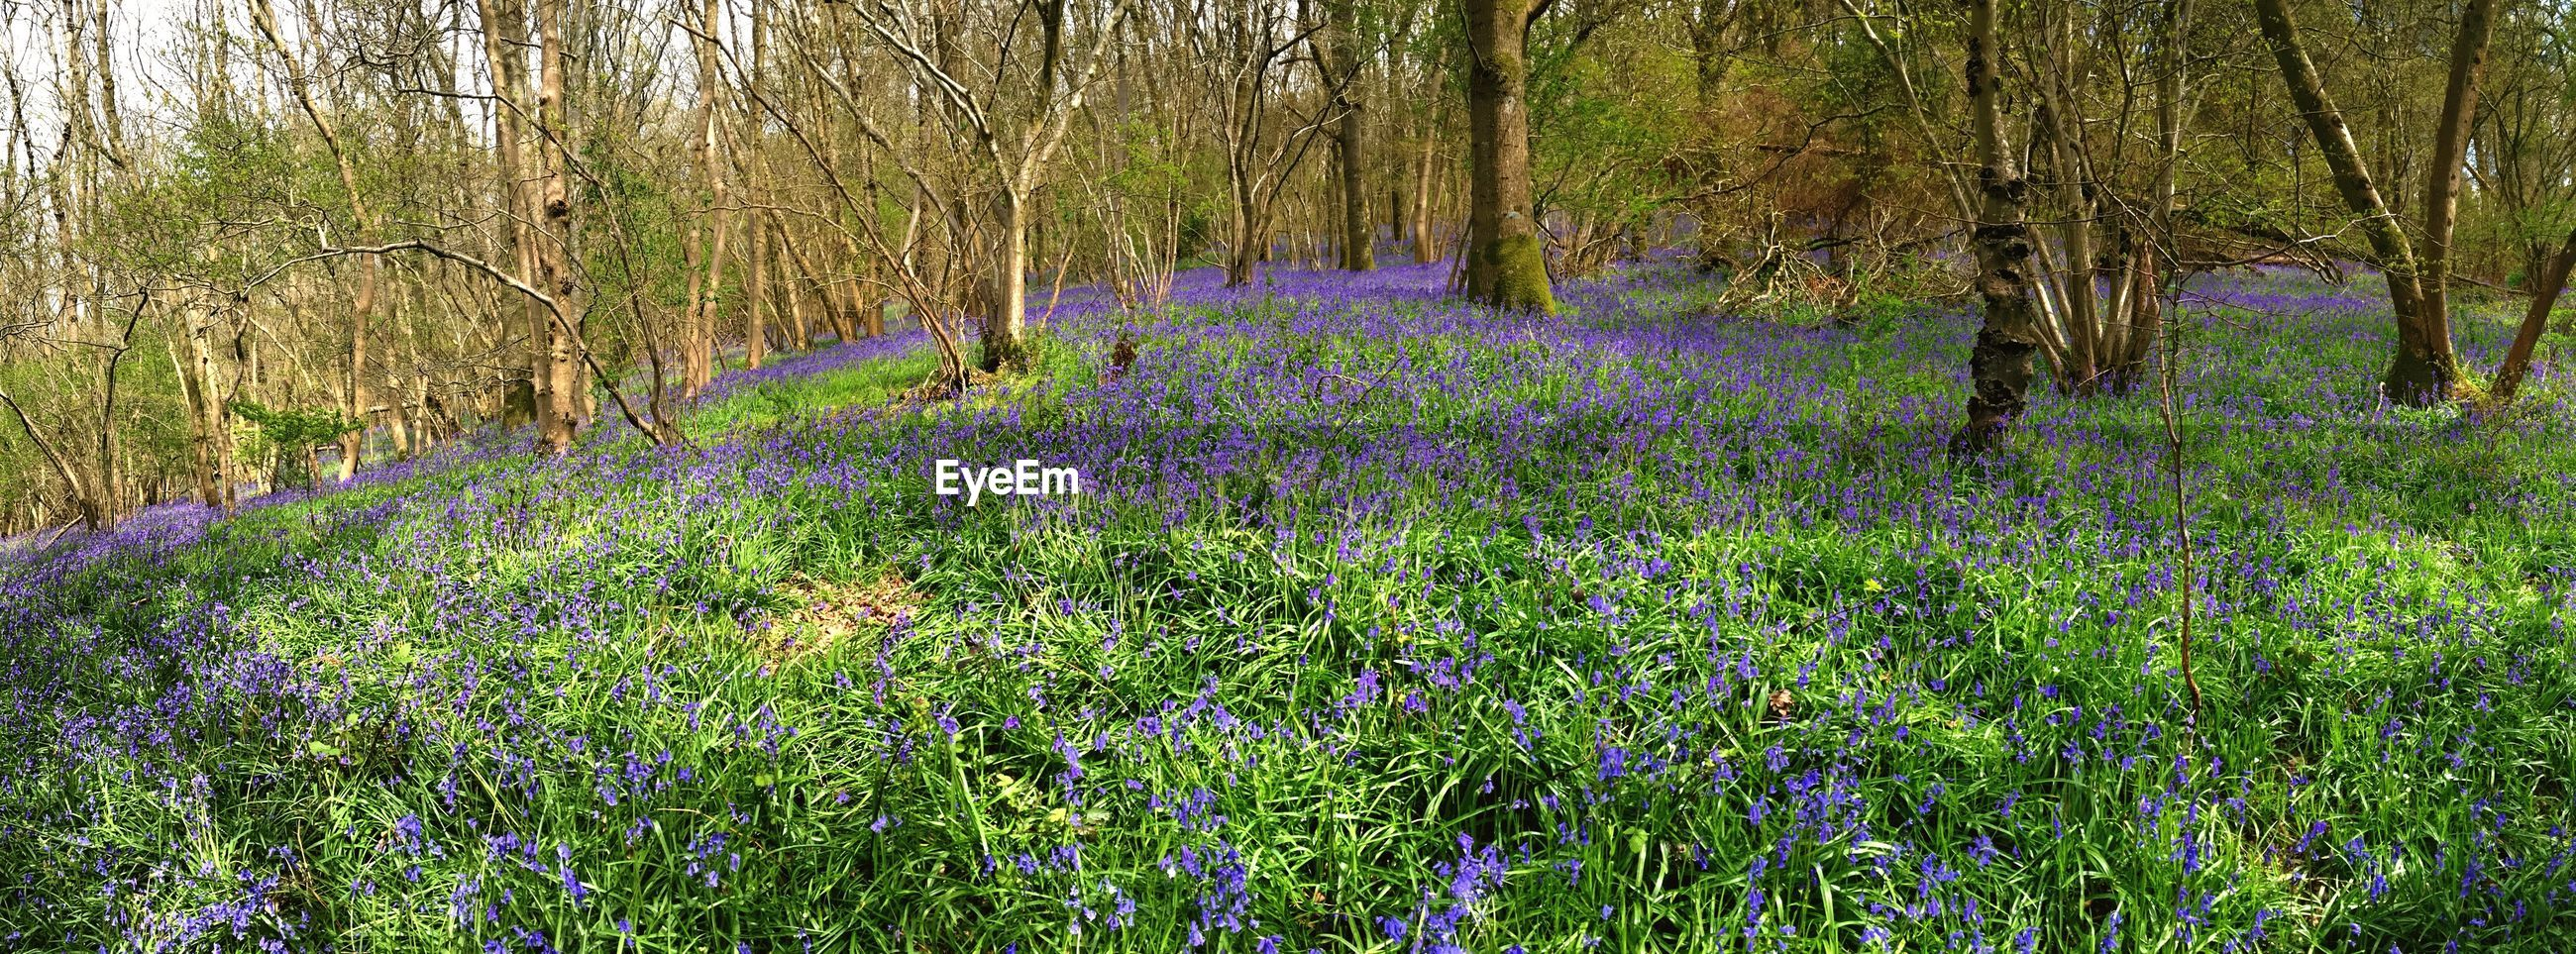 forest, flower, growth, tranquil scene, tree, beauty in nature, scenics, tranquility, nature, purple, woodland, freshness, fragility, non-urban scene, abundance, tree trunk, springtime, day, in bloom, wildflower, tree area, green color, uncultivated, no people, majestic, flowering, footpath